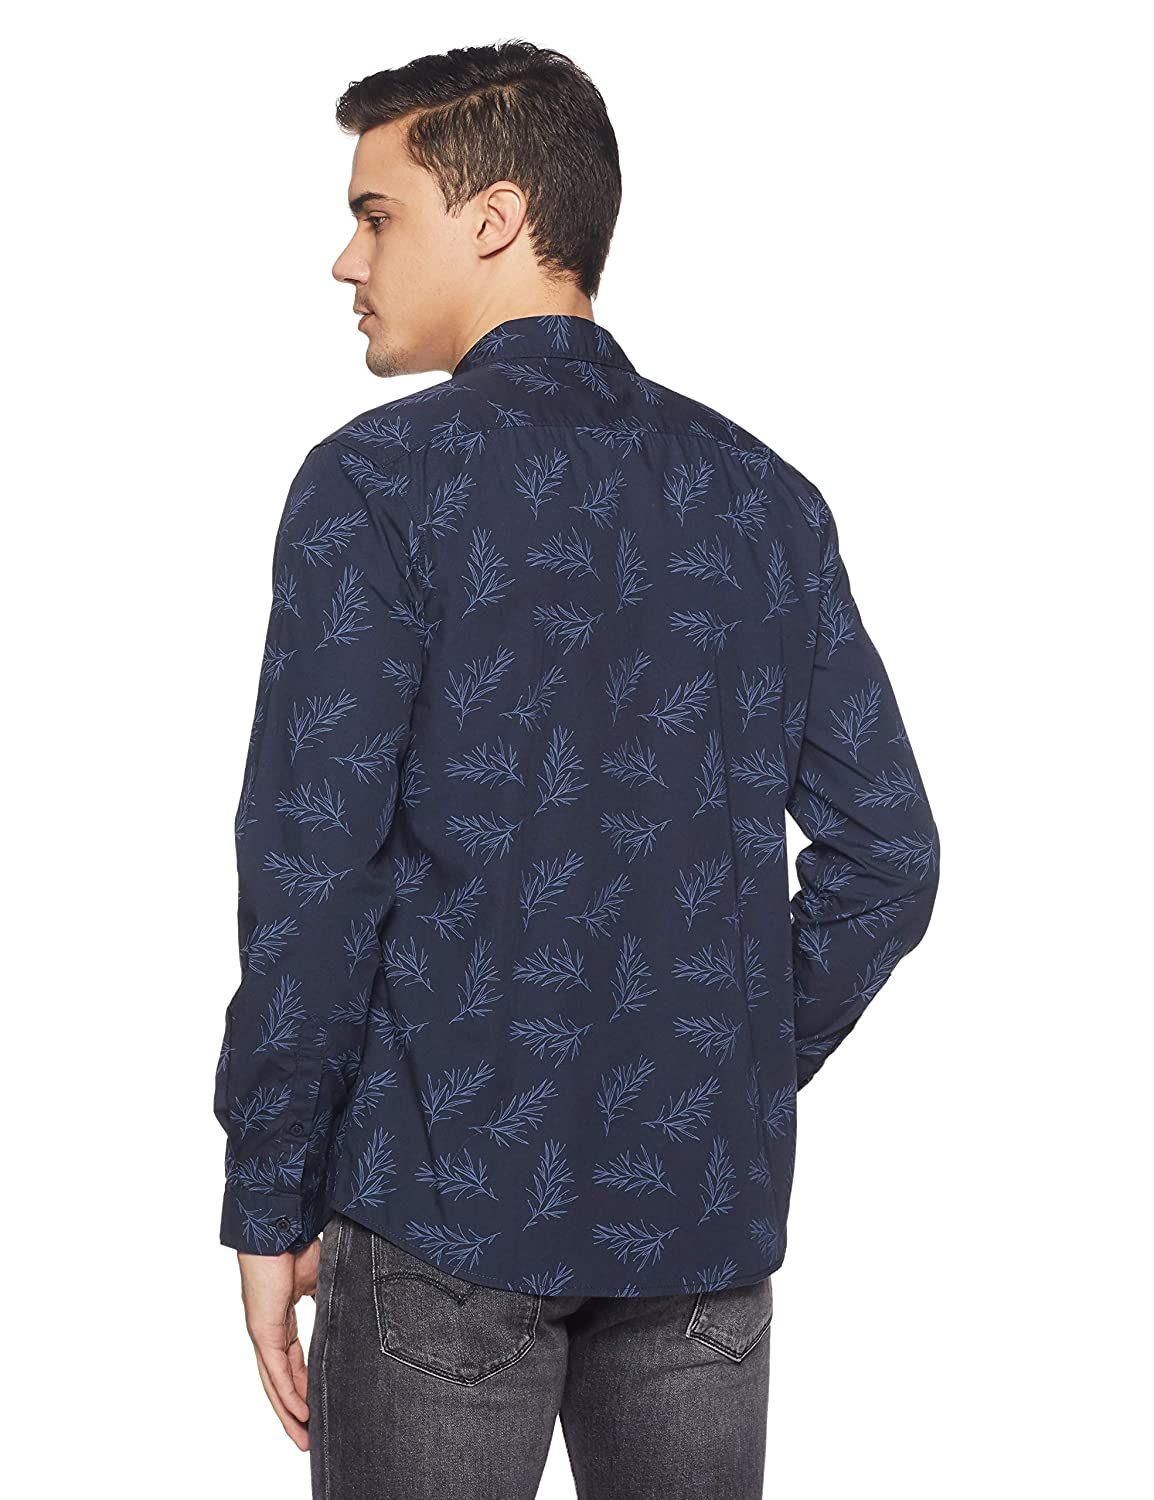 Buy Lee Clothes at 50% Off on Men's Printed Casual Shirts